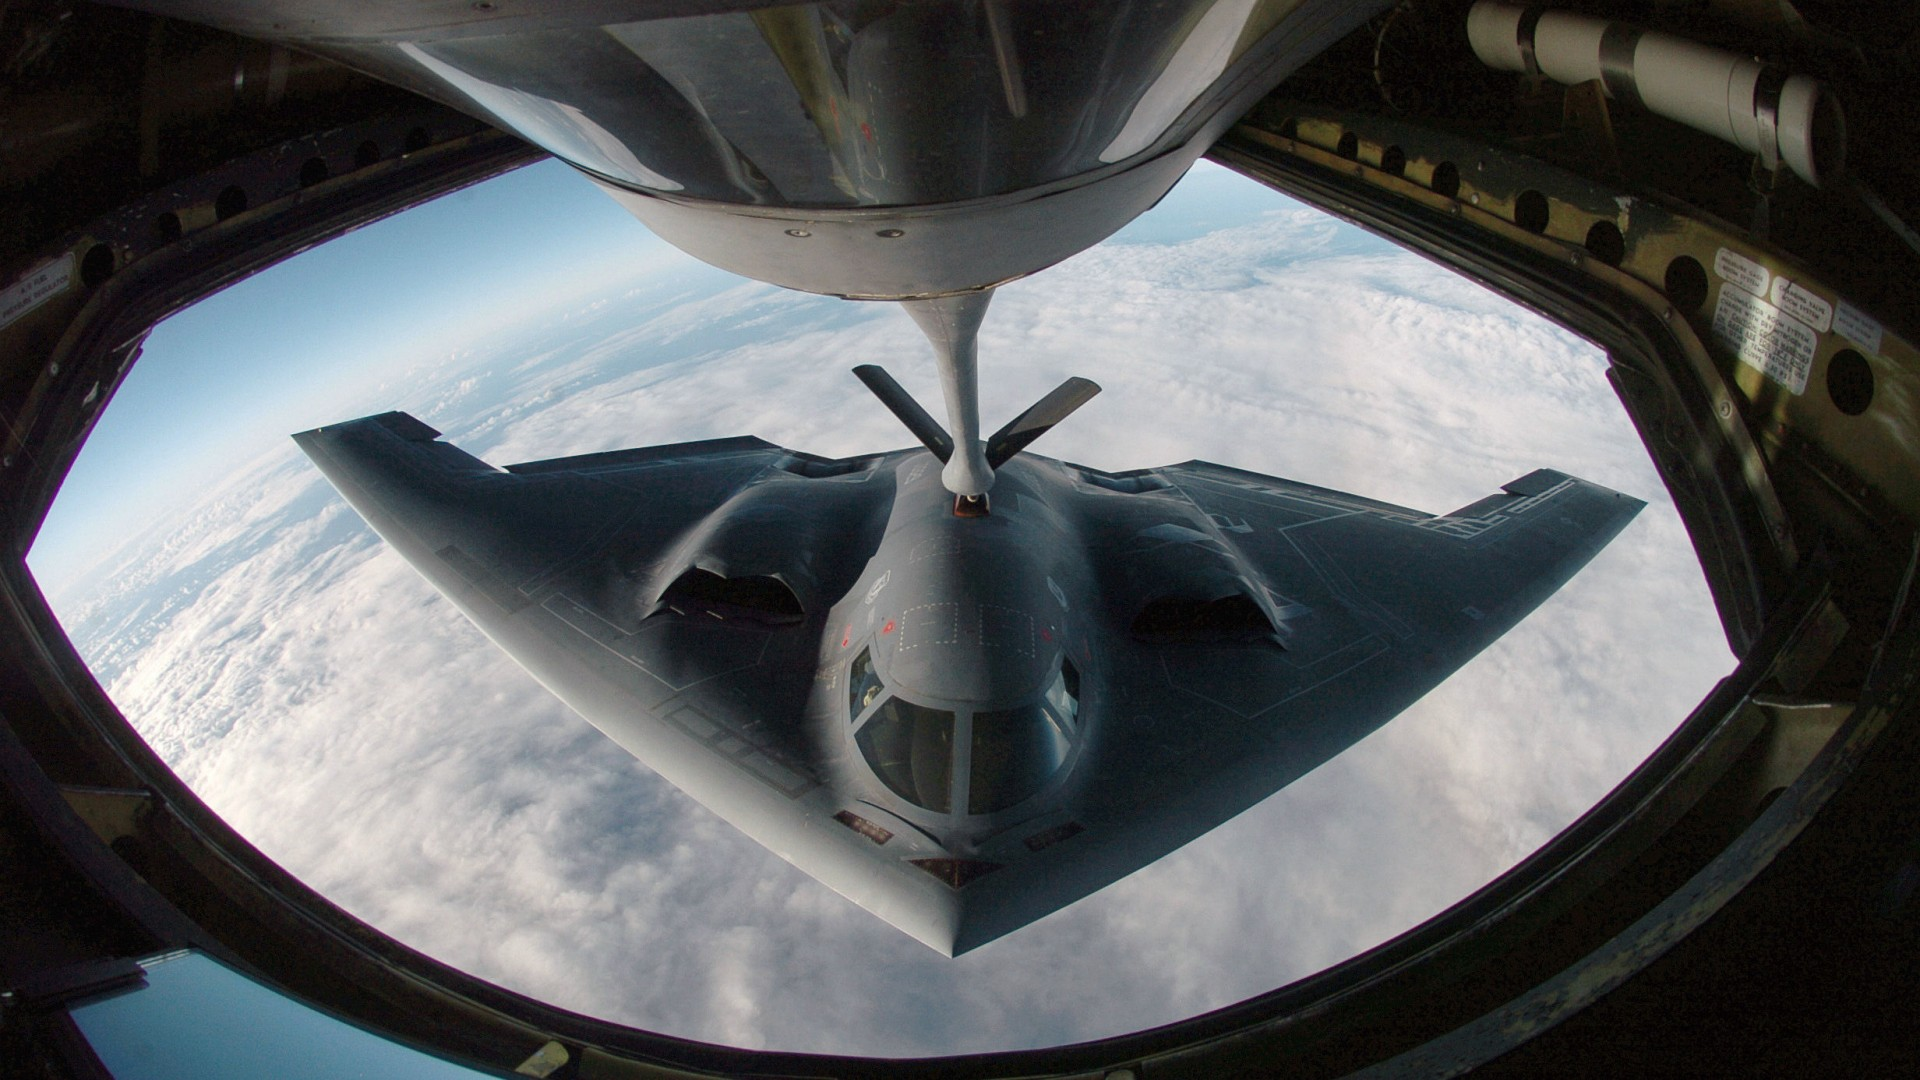 B-stealth-bomber-getting-fuelled-in-air-wallpaper-wpc9002491